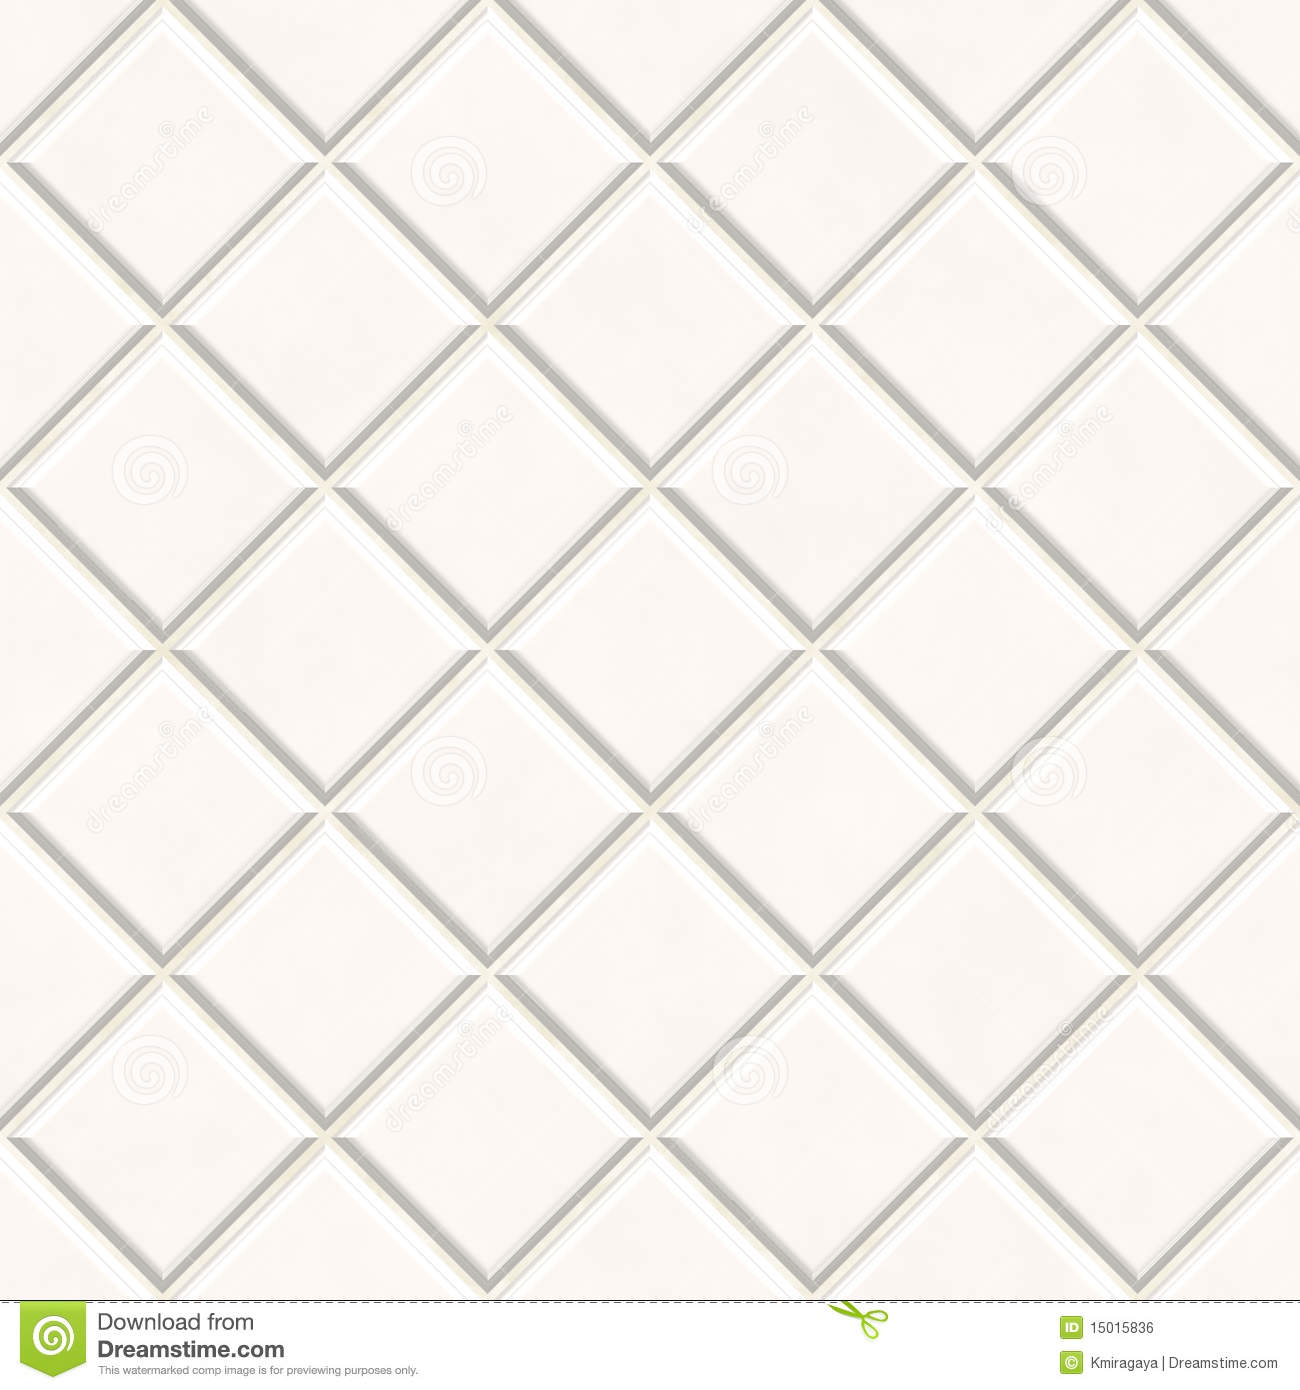 Bathroom Wall Tile Layout Patterns